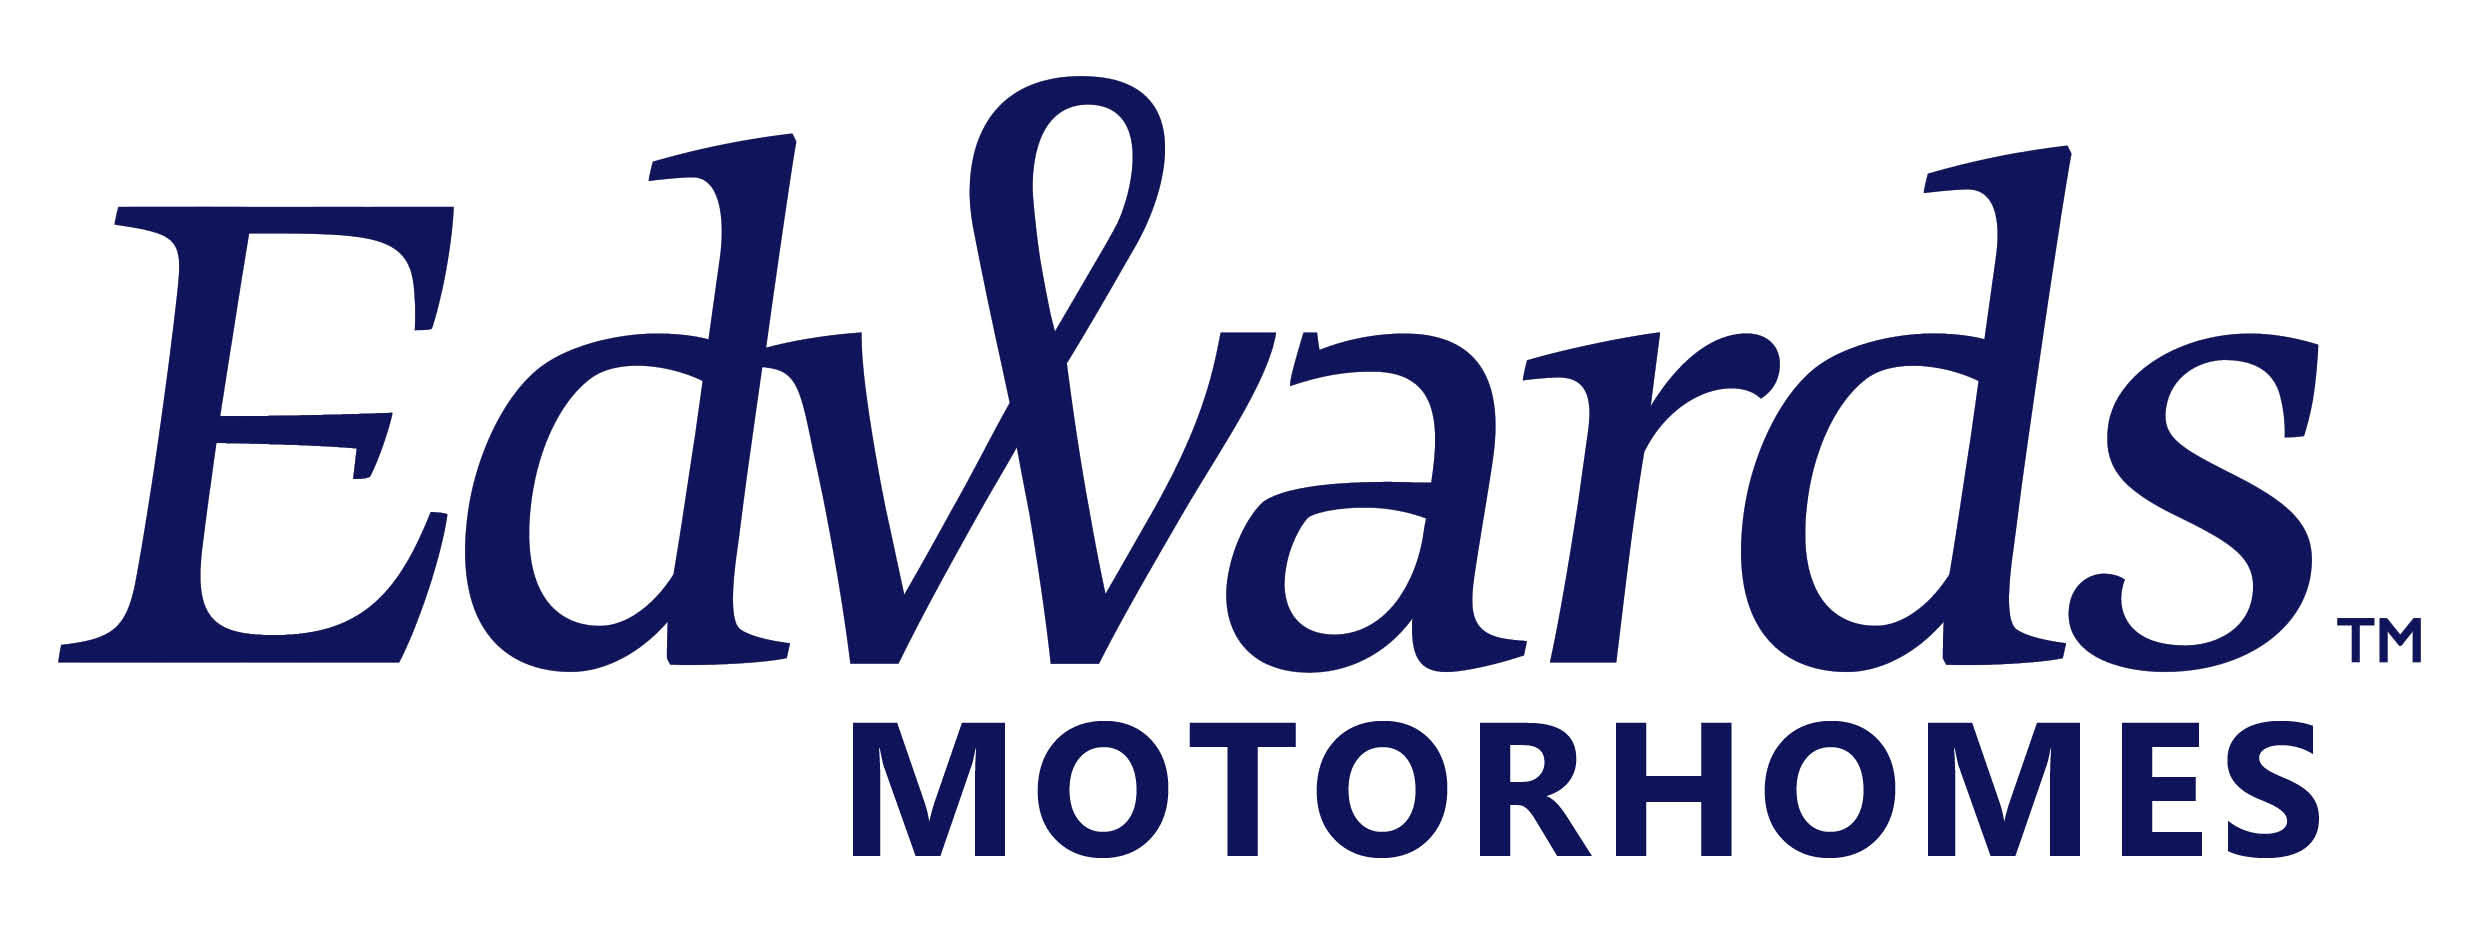 edwards motorhomes logo